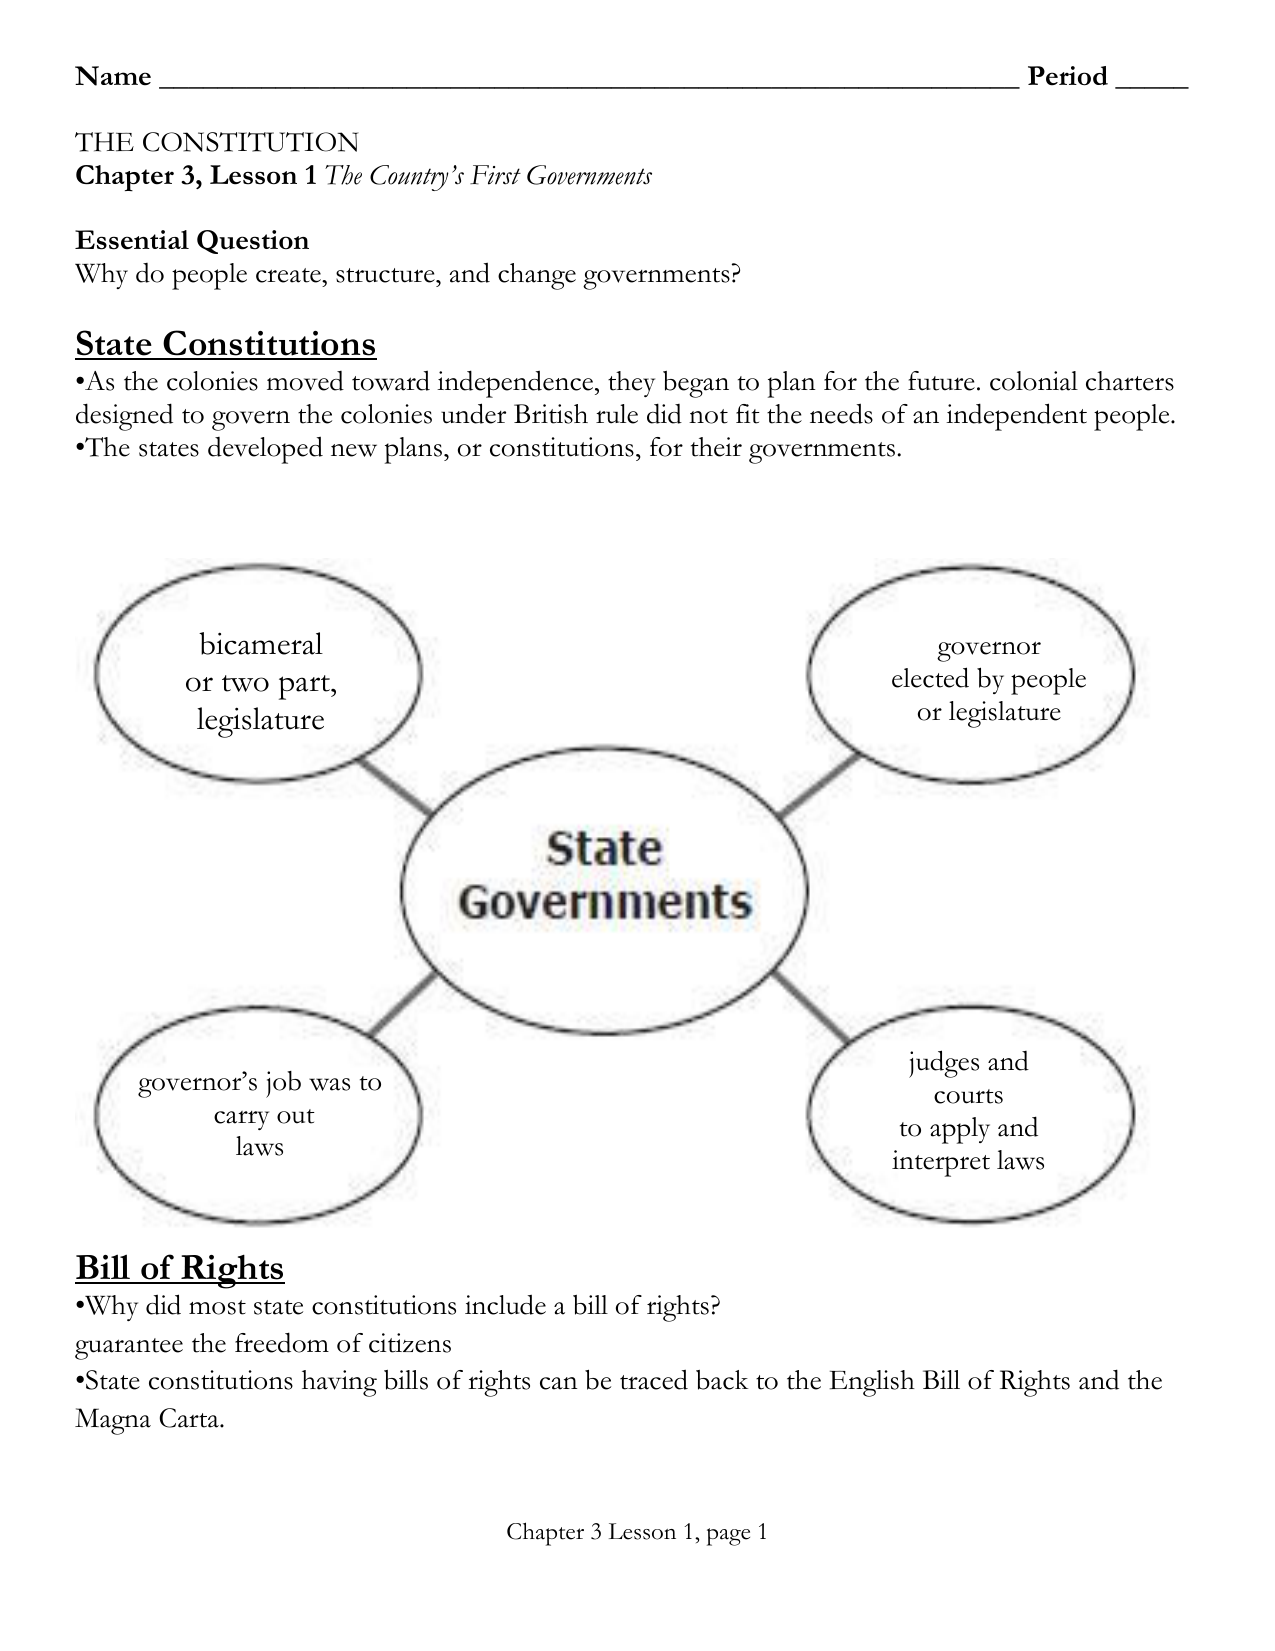 Why Government Worksheet Answers - Promotiontablecovers